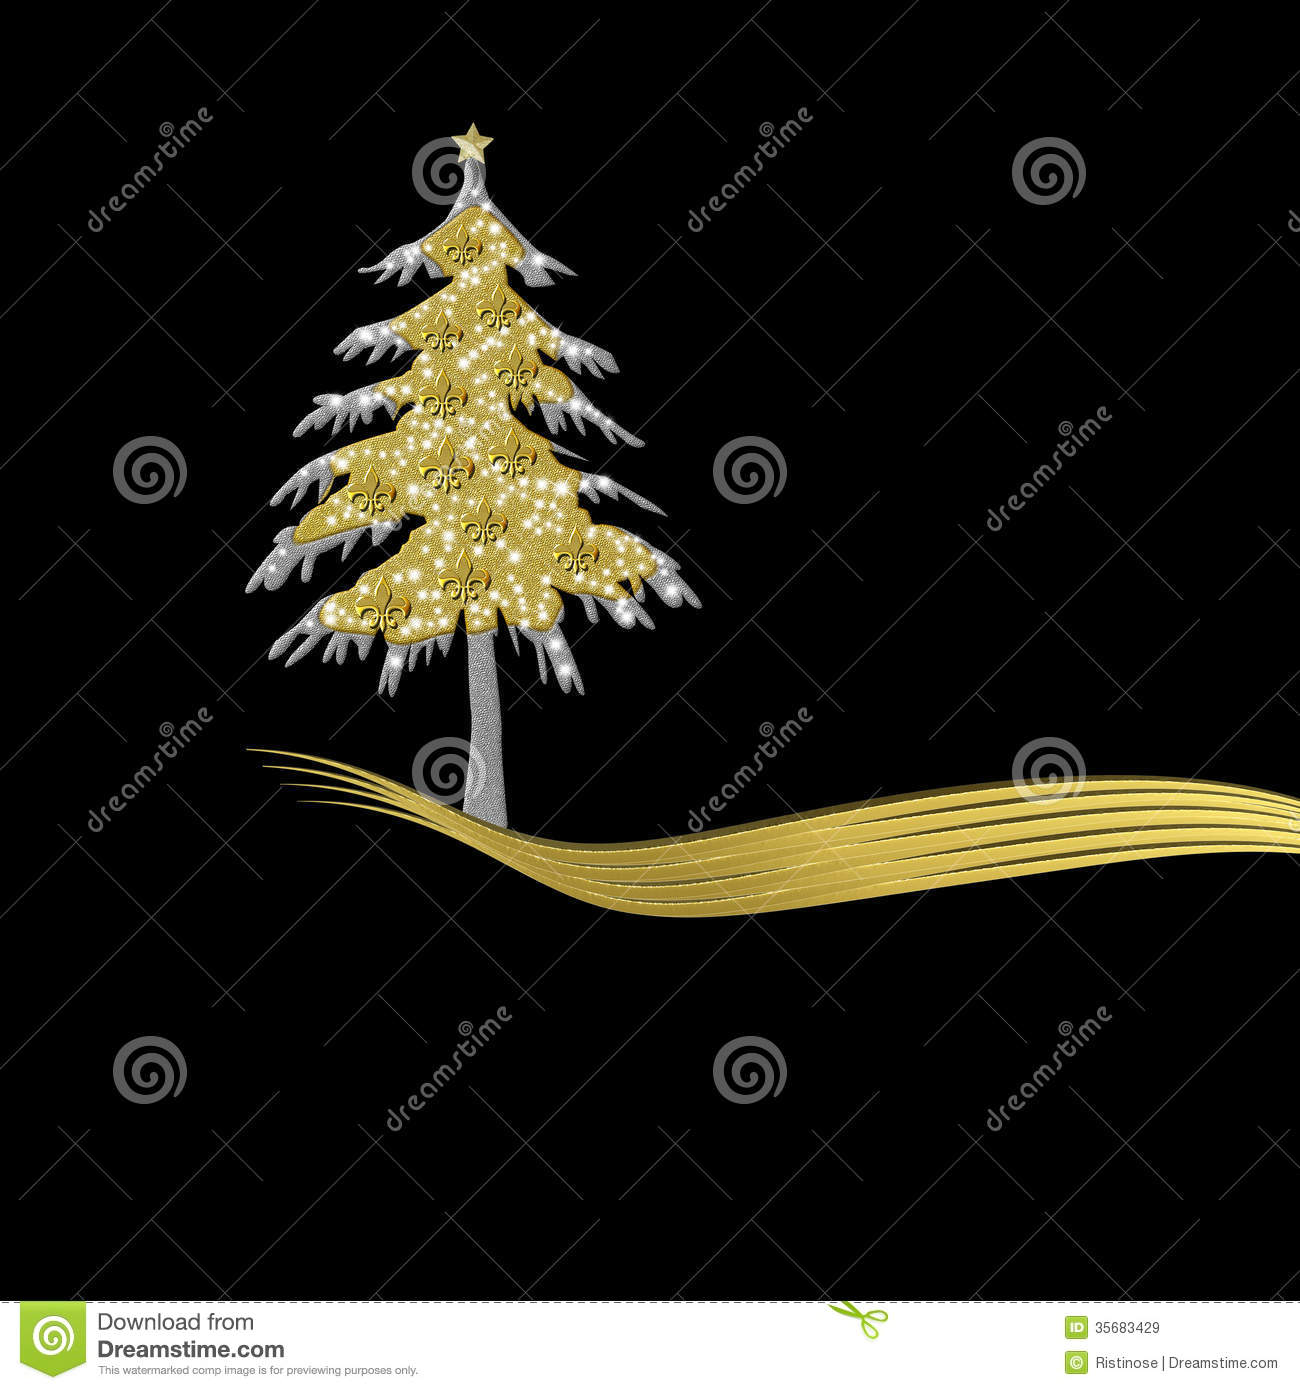 elegant christmas card in gold and black tree ornament with fle stock illustration - Elegant Christmas Cards